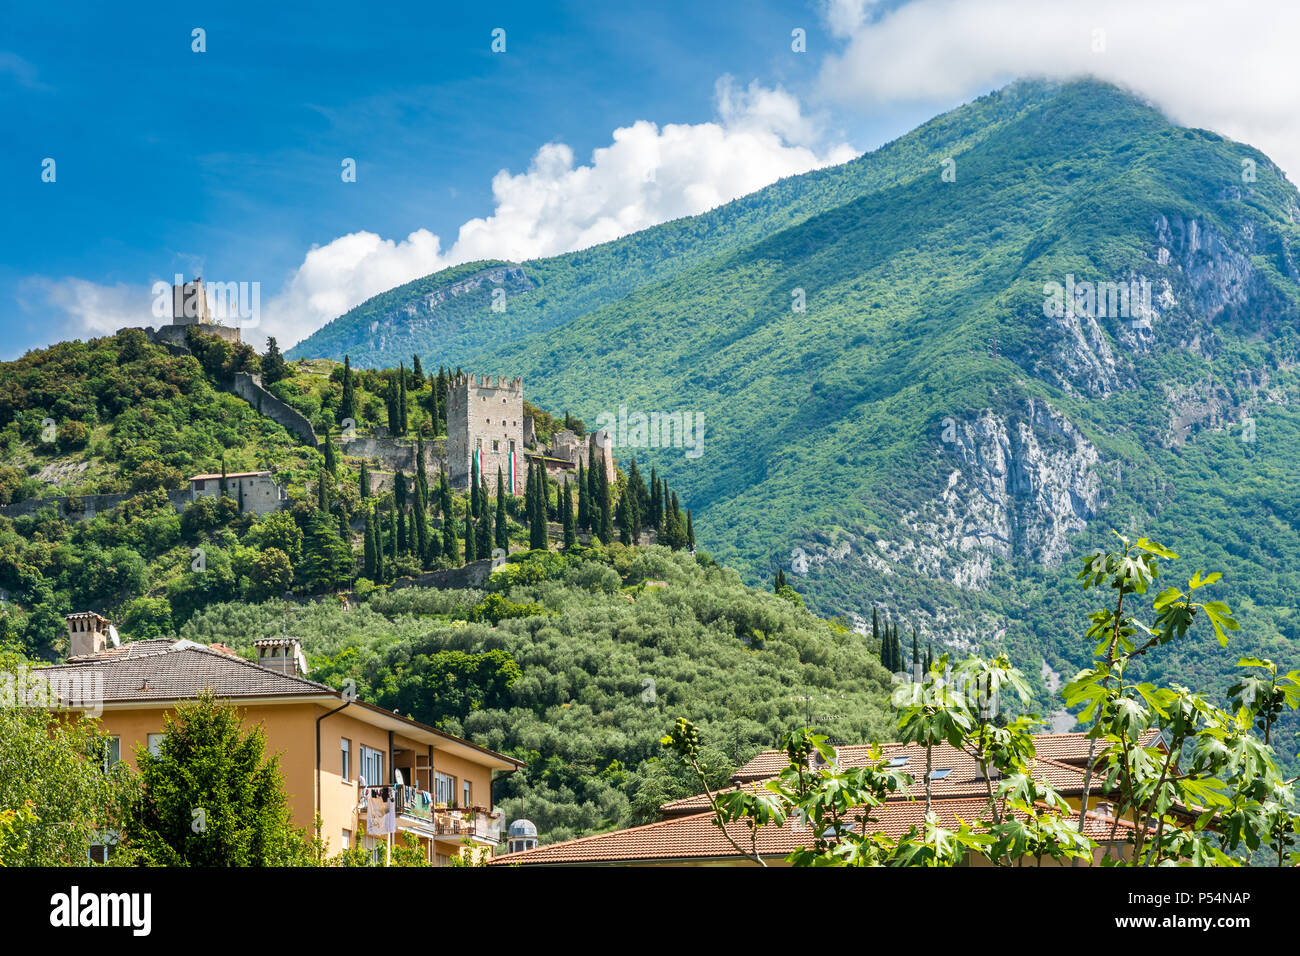 Arco Castle (Castello di Arco) is a ruined castle located on a prominent spur high above Arco and the Sarca Valley in Trentino Alto Adige, Italy - Stock Image